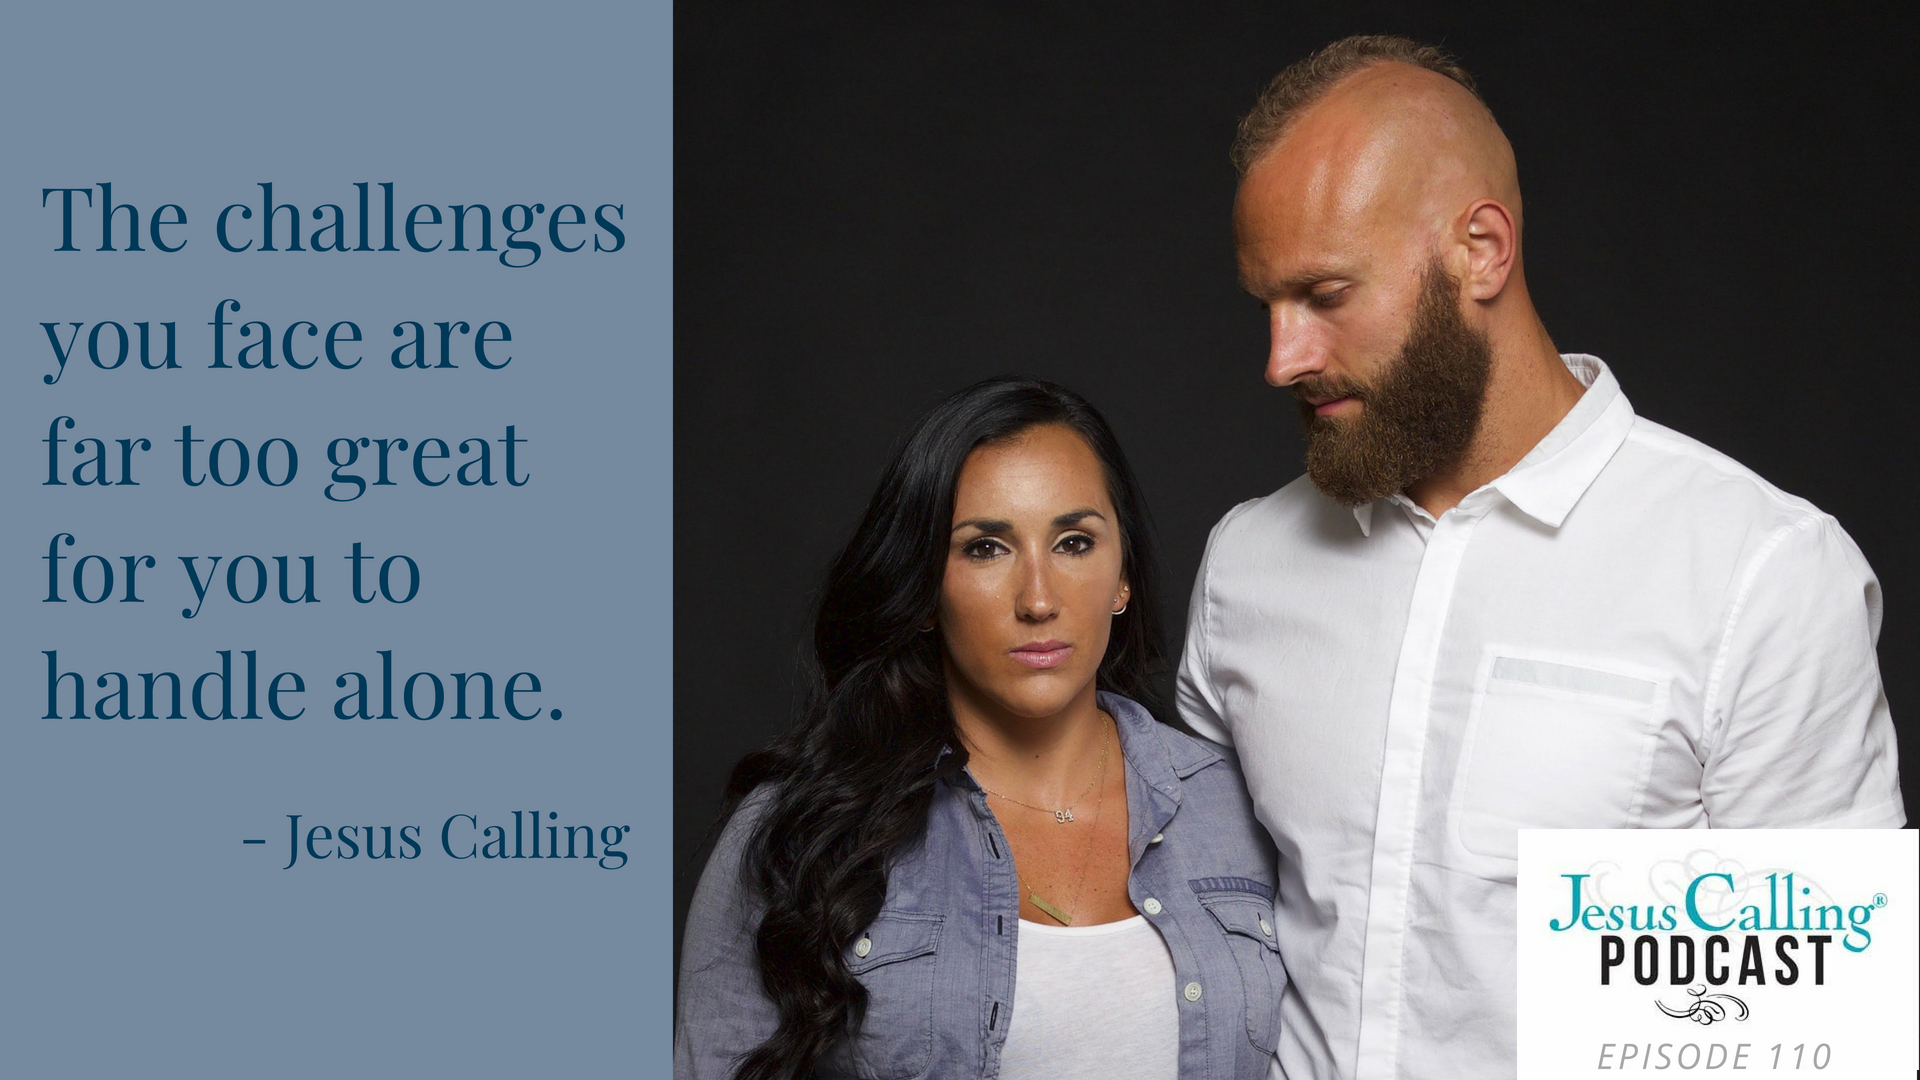 Mark and Danielle Herzlich as featured on the Jesus Calling podcast